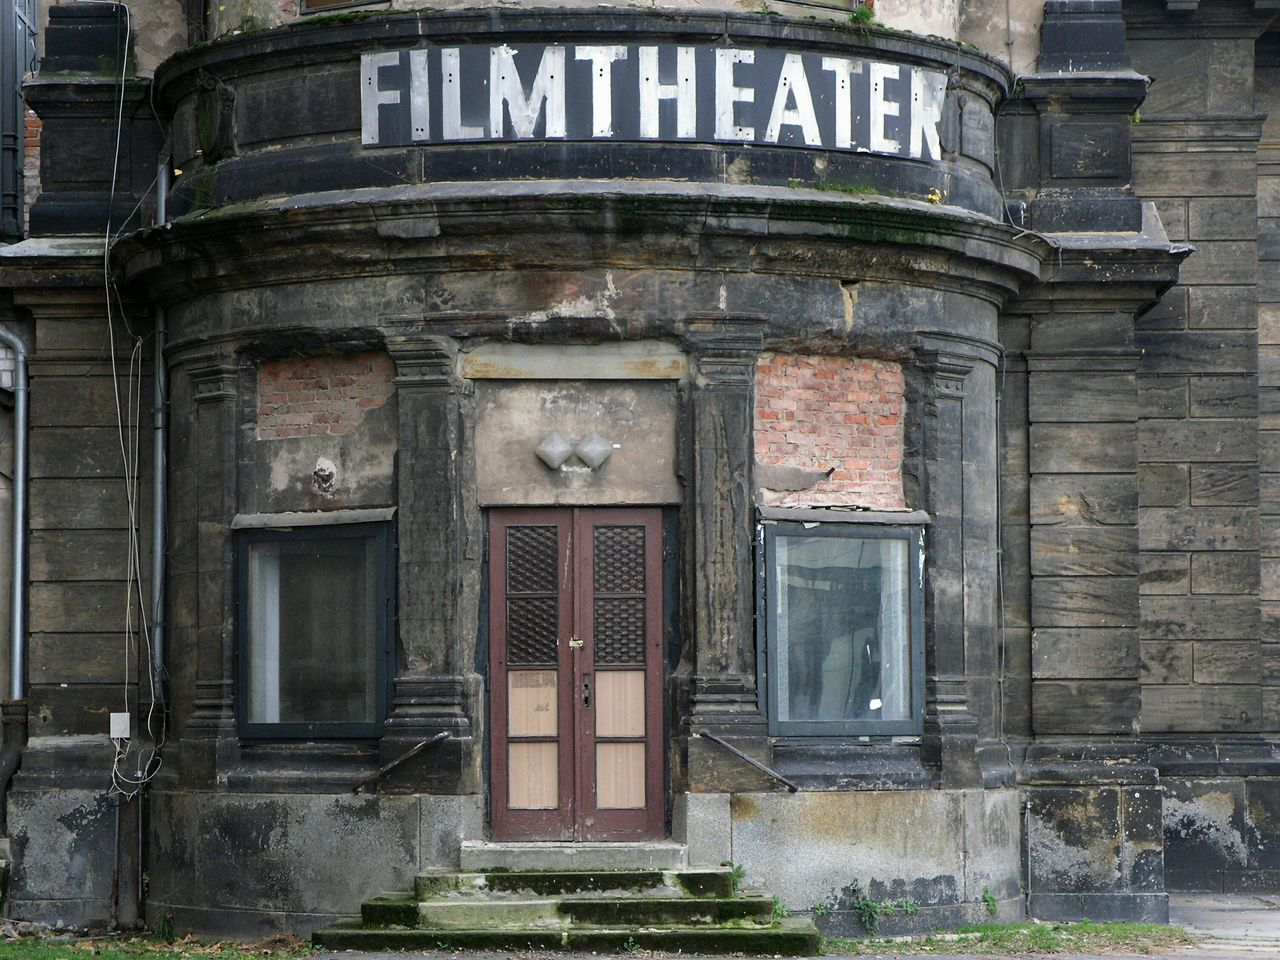 Beautiful stock photos of cinema, , Germany, Horizontal Image, abandoned